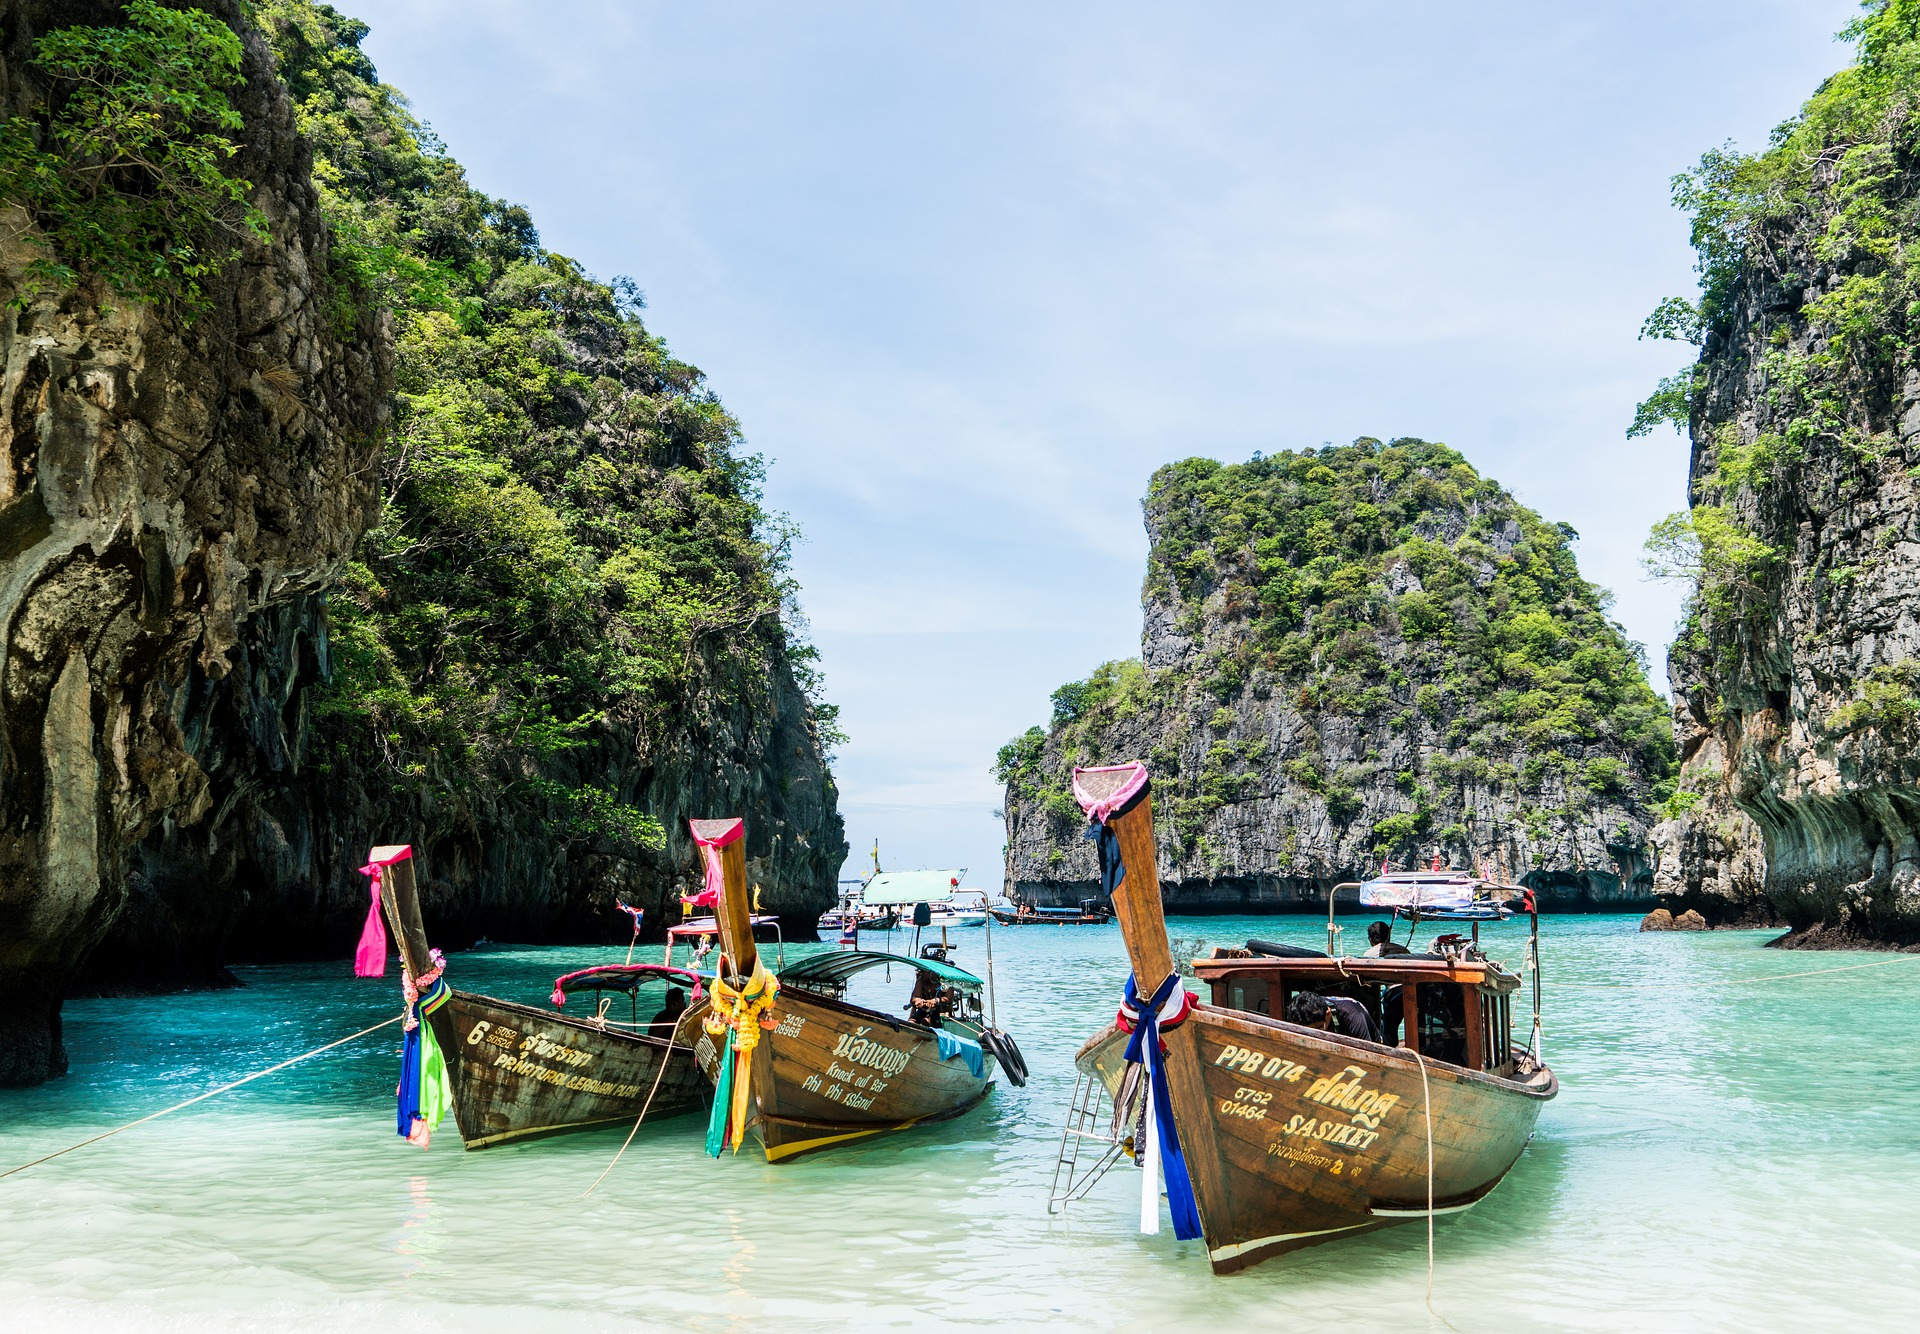 phuket, a fantastic beach destination in thailand